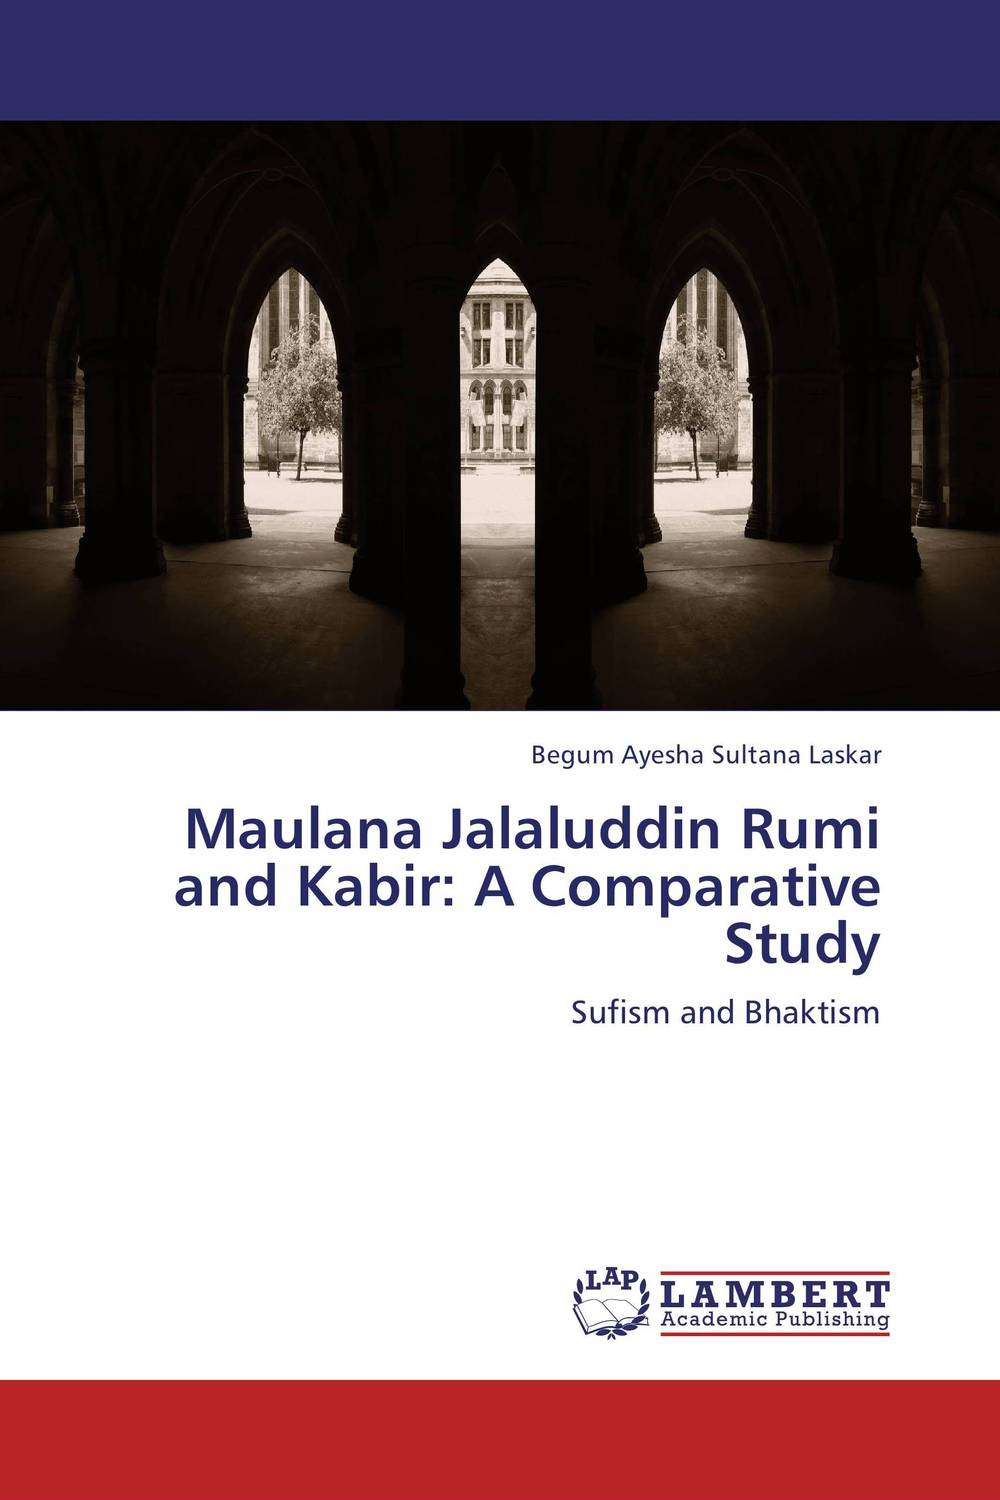 Maulana Jalaluddin Rumi and Kabir: A Comparative Study a study of the religio political thought of abdurrahman wahid